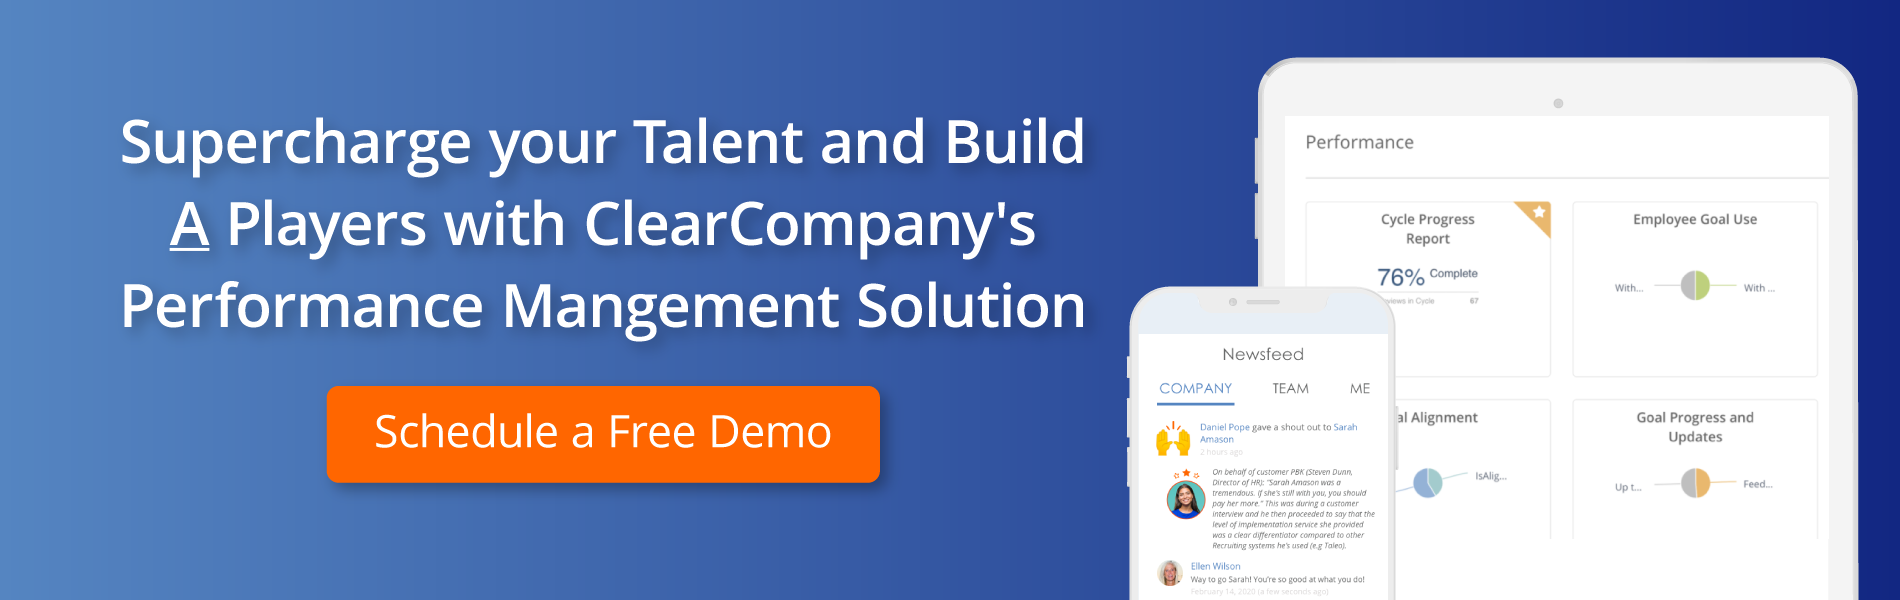 A Players with ClearCompany's Performance Management Solution